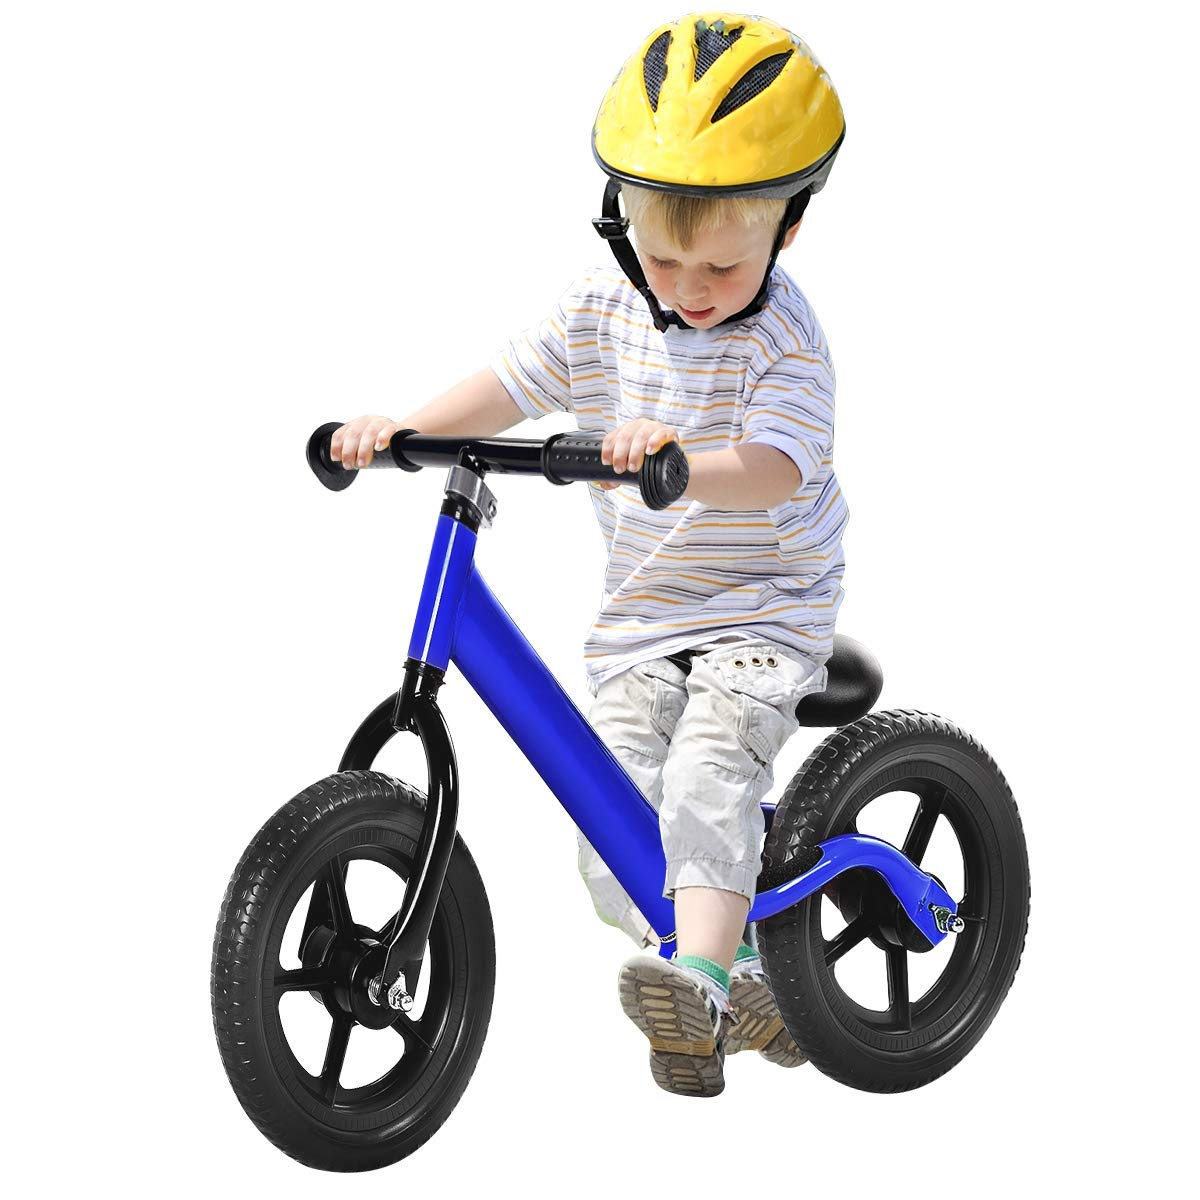 Costzon Kids Balance Bike, 12 Inch Classic Lightweight No-Pedal Toddlers Walking Bicycle w/Height Adjustable Seat and Handle, for Children Boys & Girls Age 2-5 (Blue)